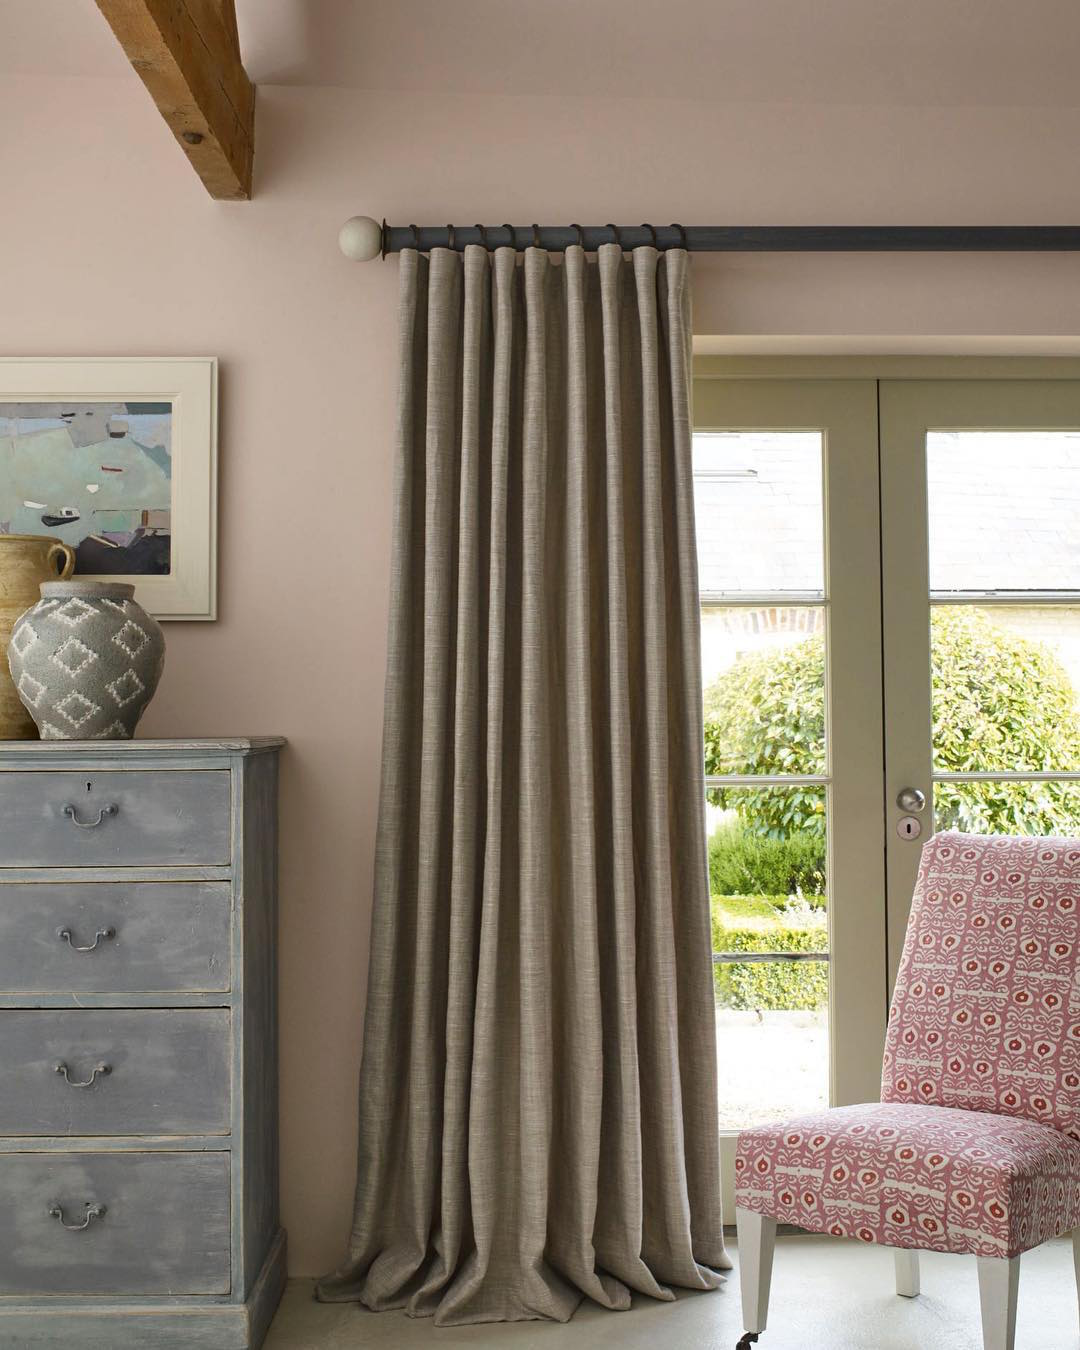 Wave And Ripple Curtains More Ways To Get The Look The